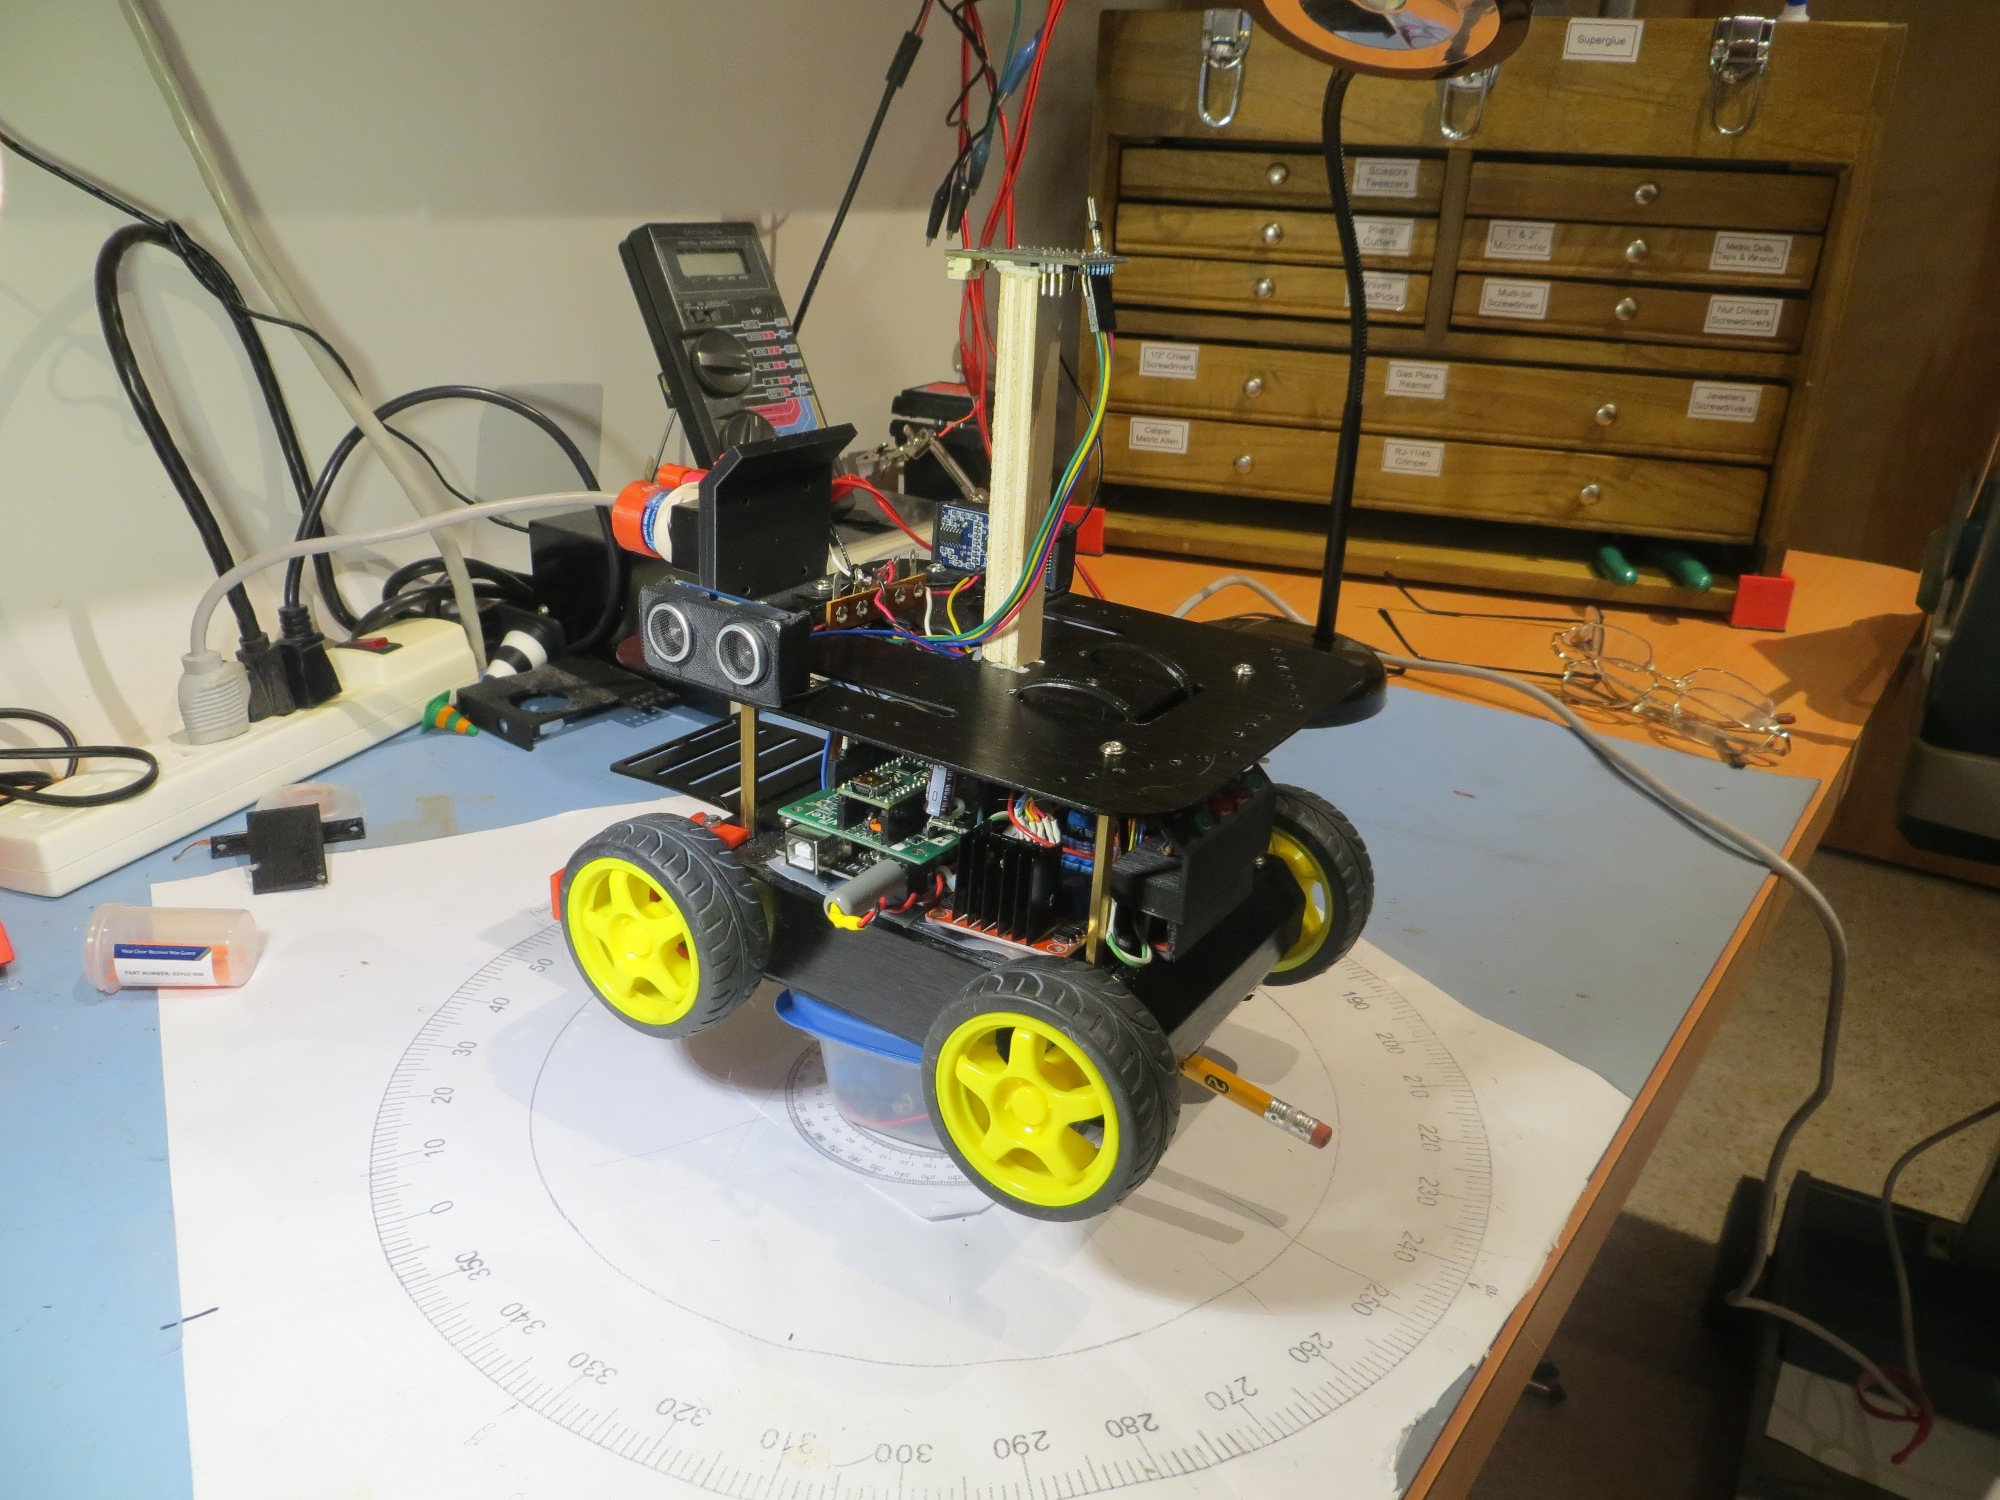 """Test setup for the """"Power and Motors"""" IMU heading error experiment."""